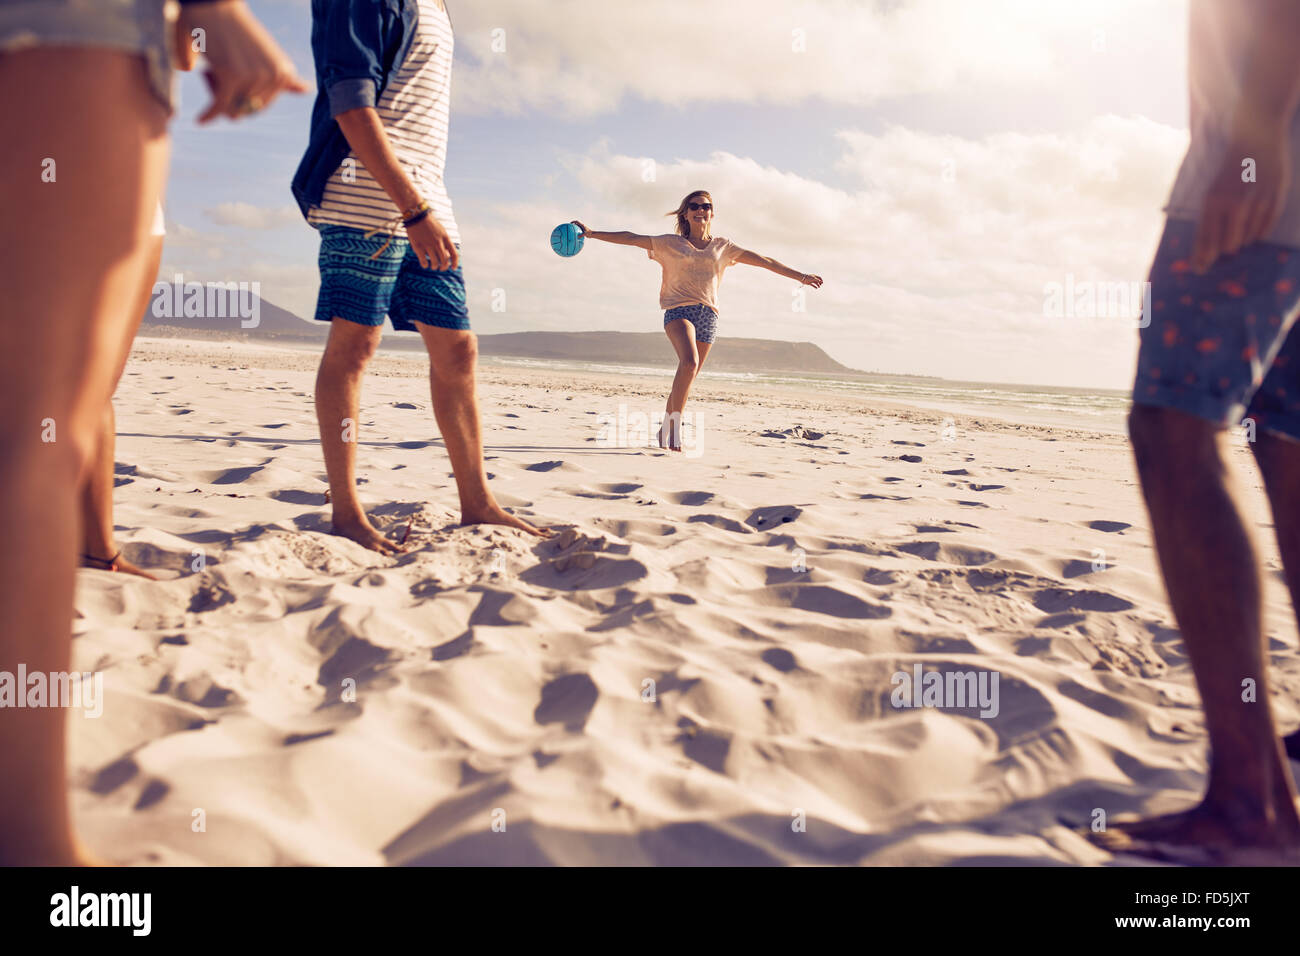 Low angle shot of young woman running on the beach with a ball with her friends standing in front. Group of friendsStock Photo